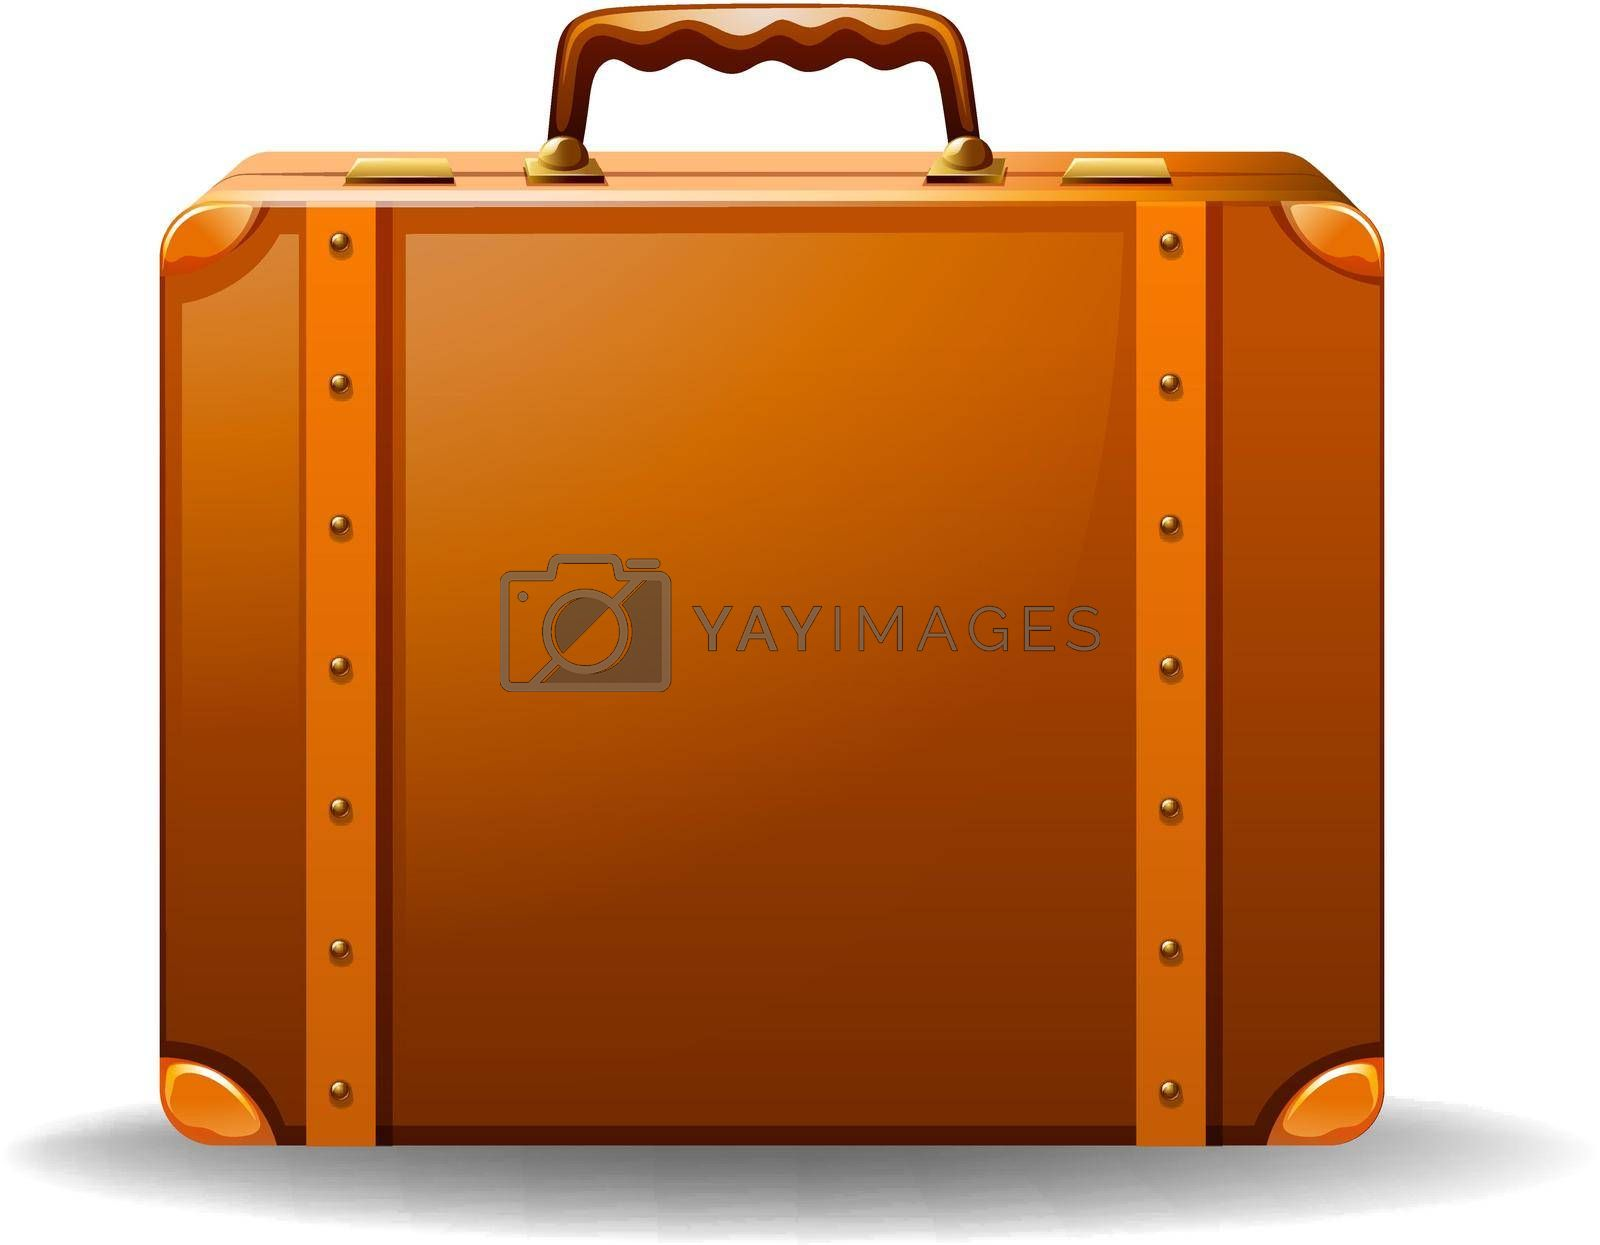 Royalty free image of Luggage by iimages